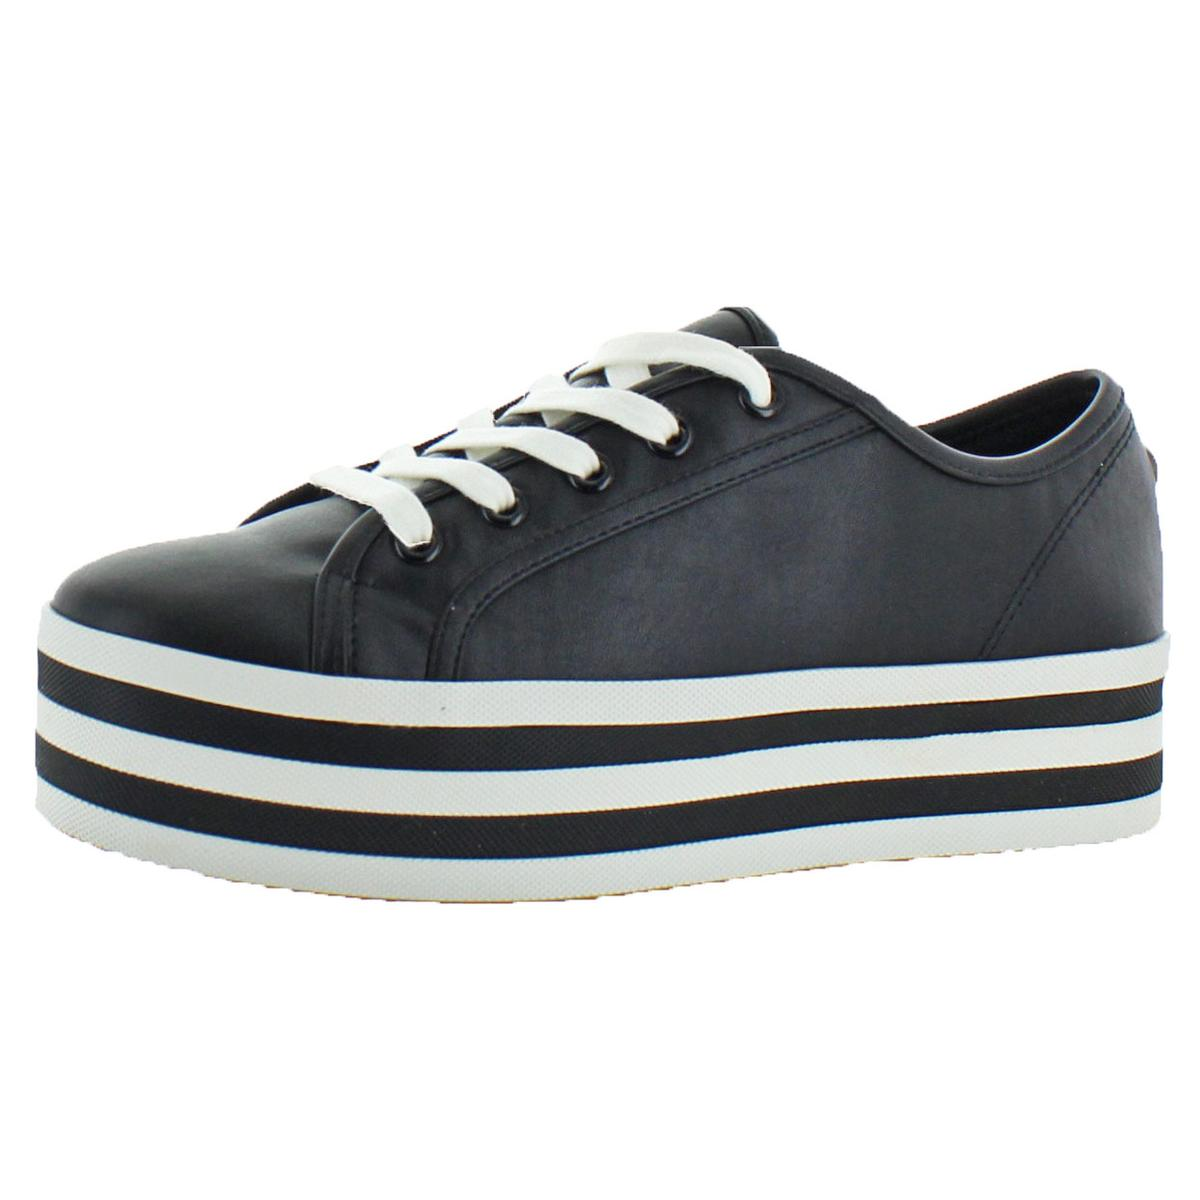 8afe3894f49 Details about Steve Madden Womens Rainbow Black Fashion Sneakers 10 Medium  (B